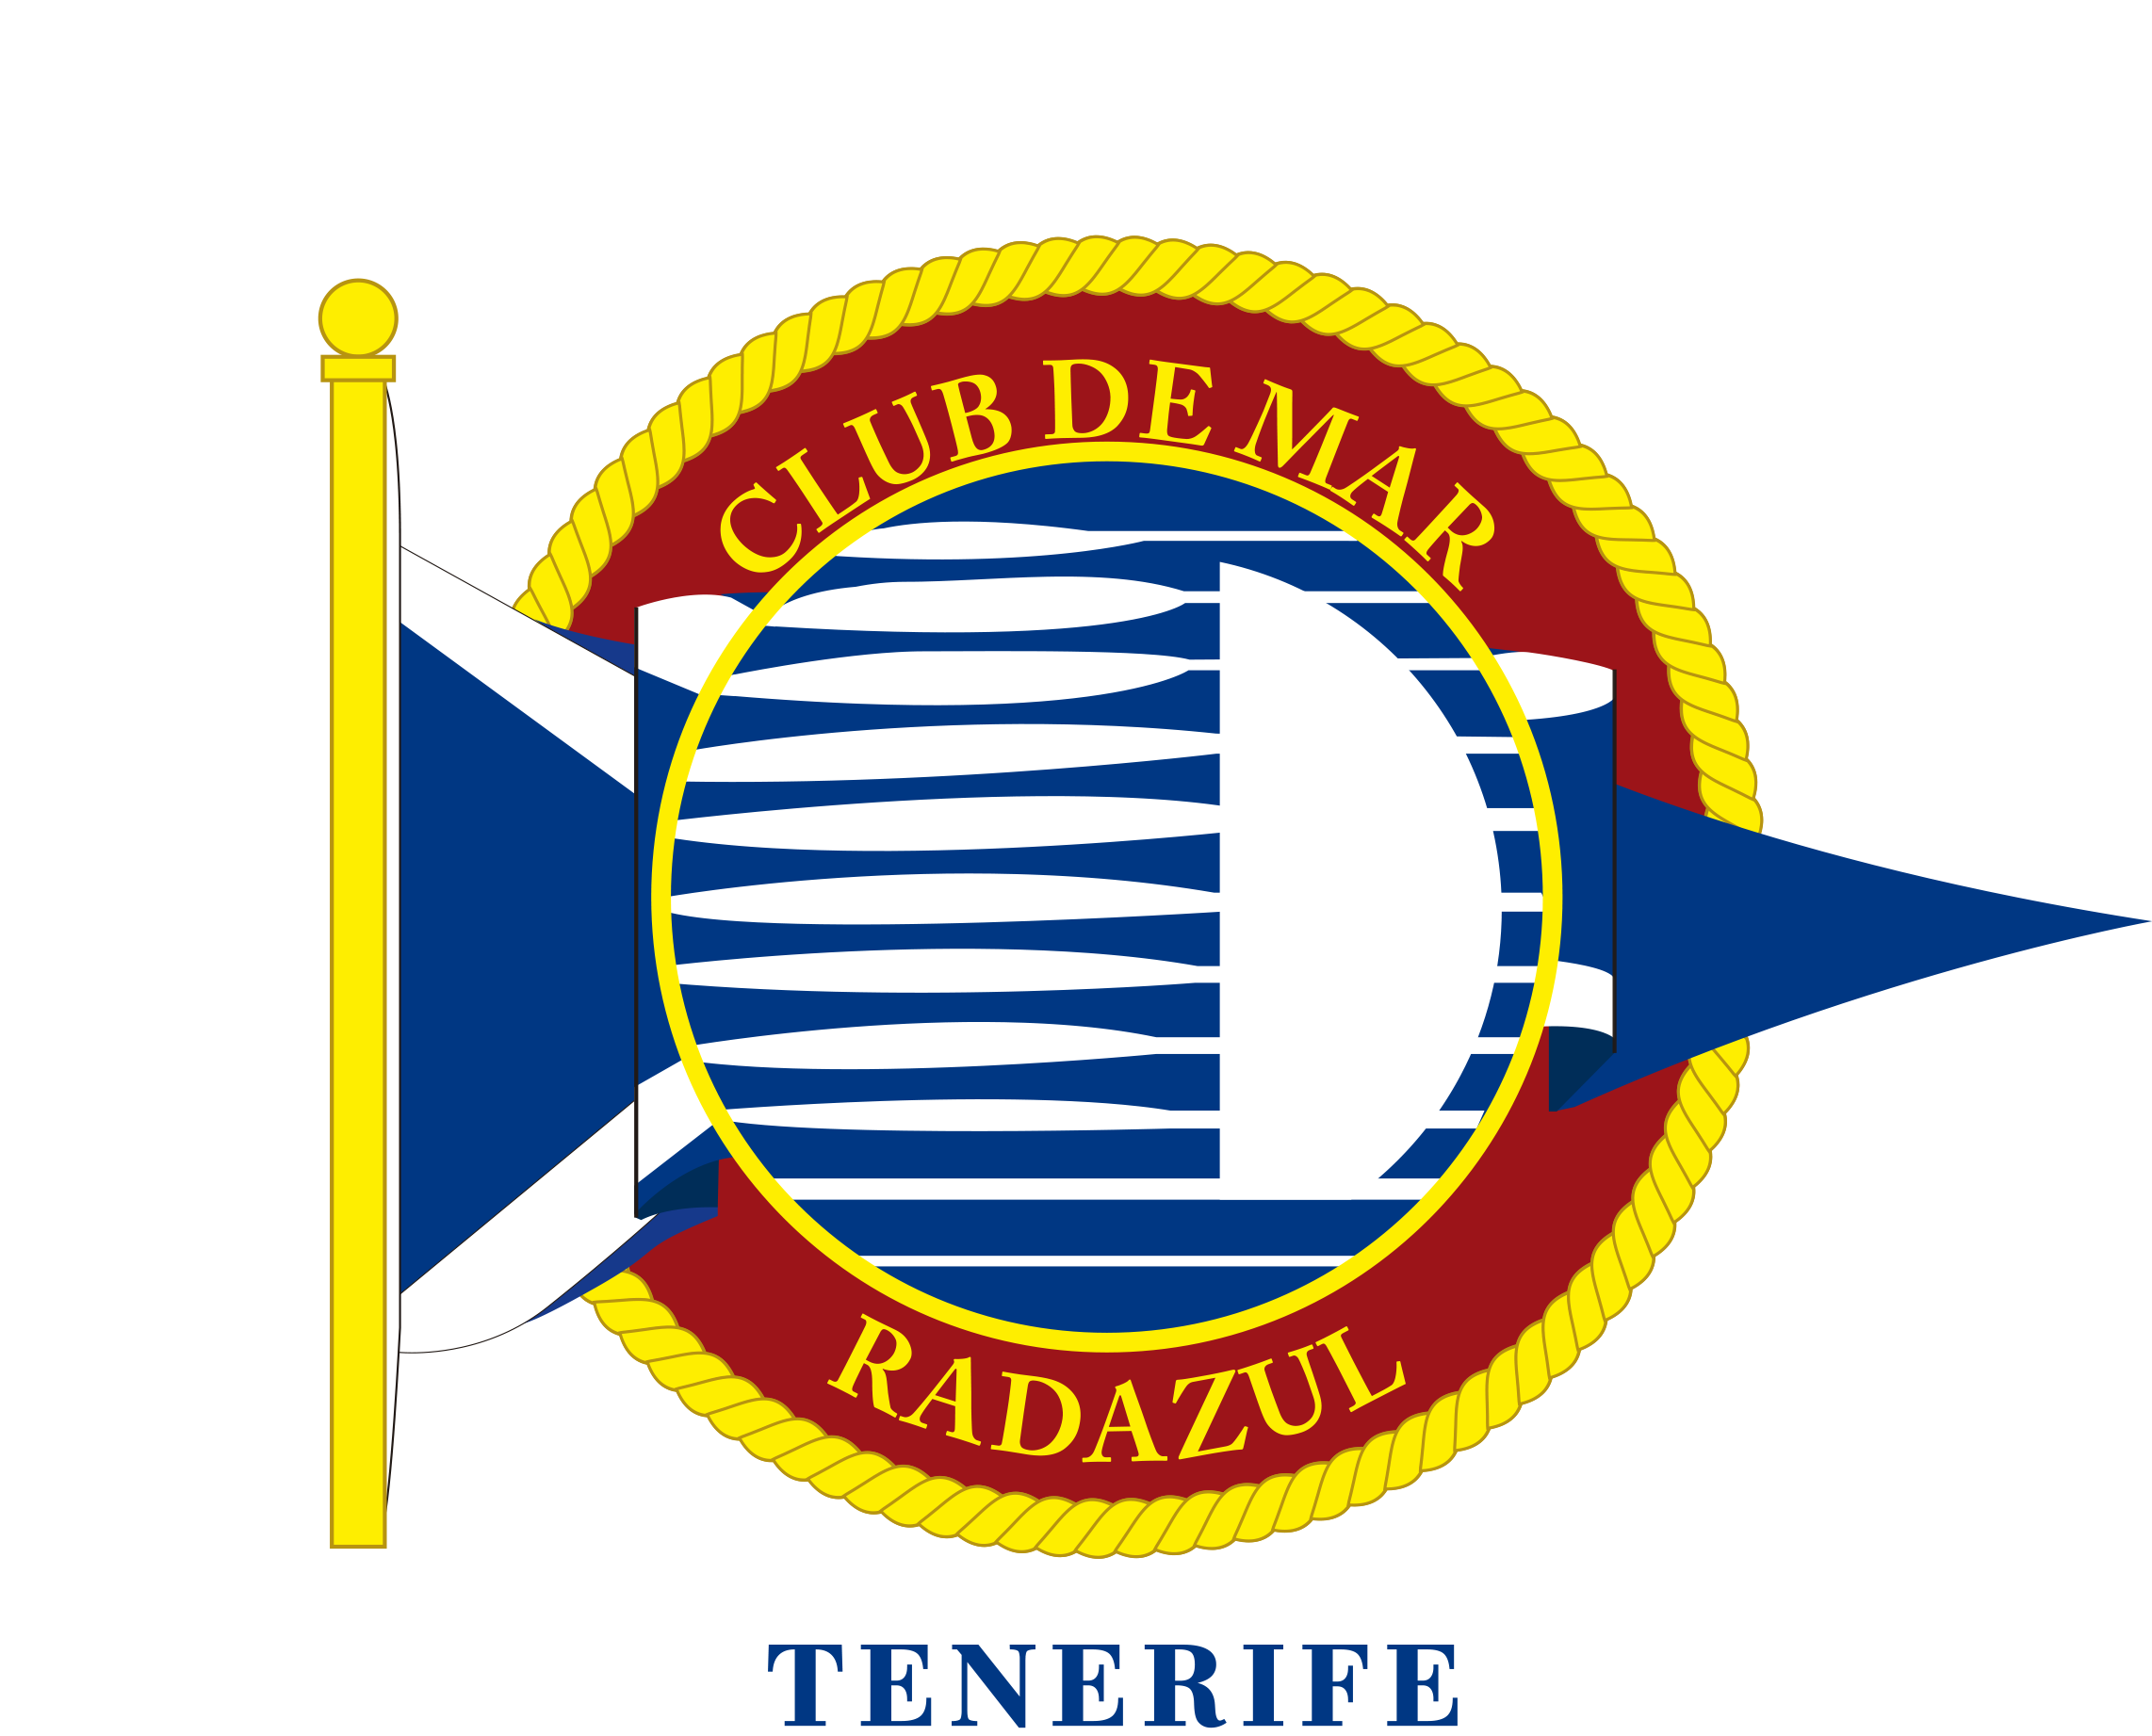 Club de Mar Radazul